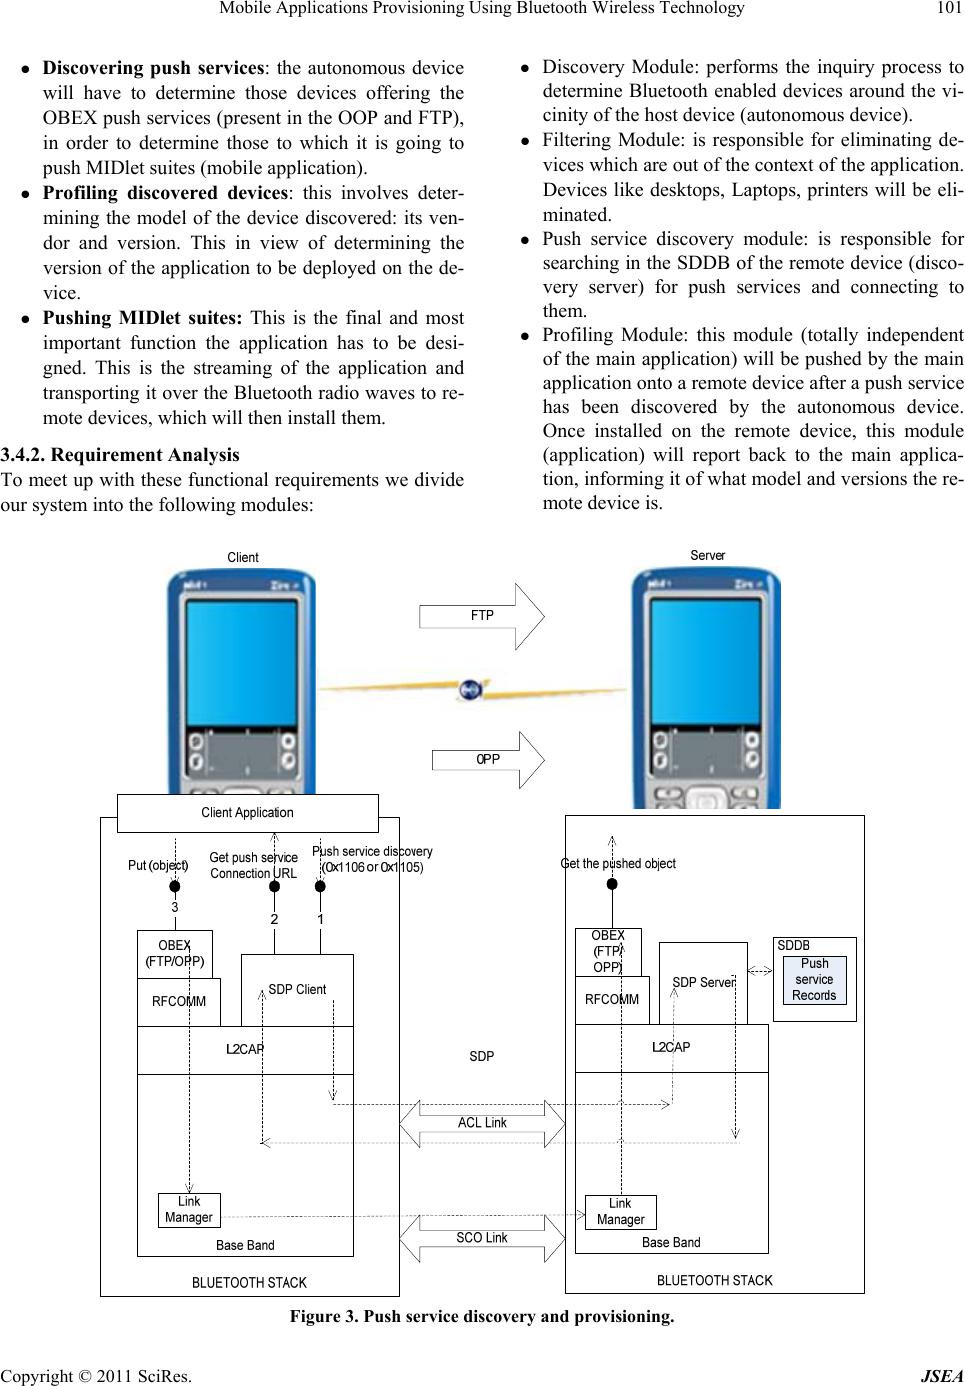 Mobile Applications Provisioning Using Bluetooth Wireless Technology